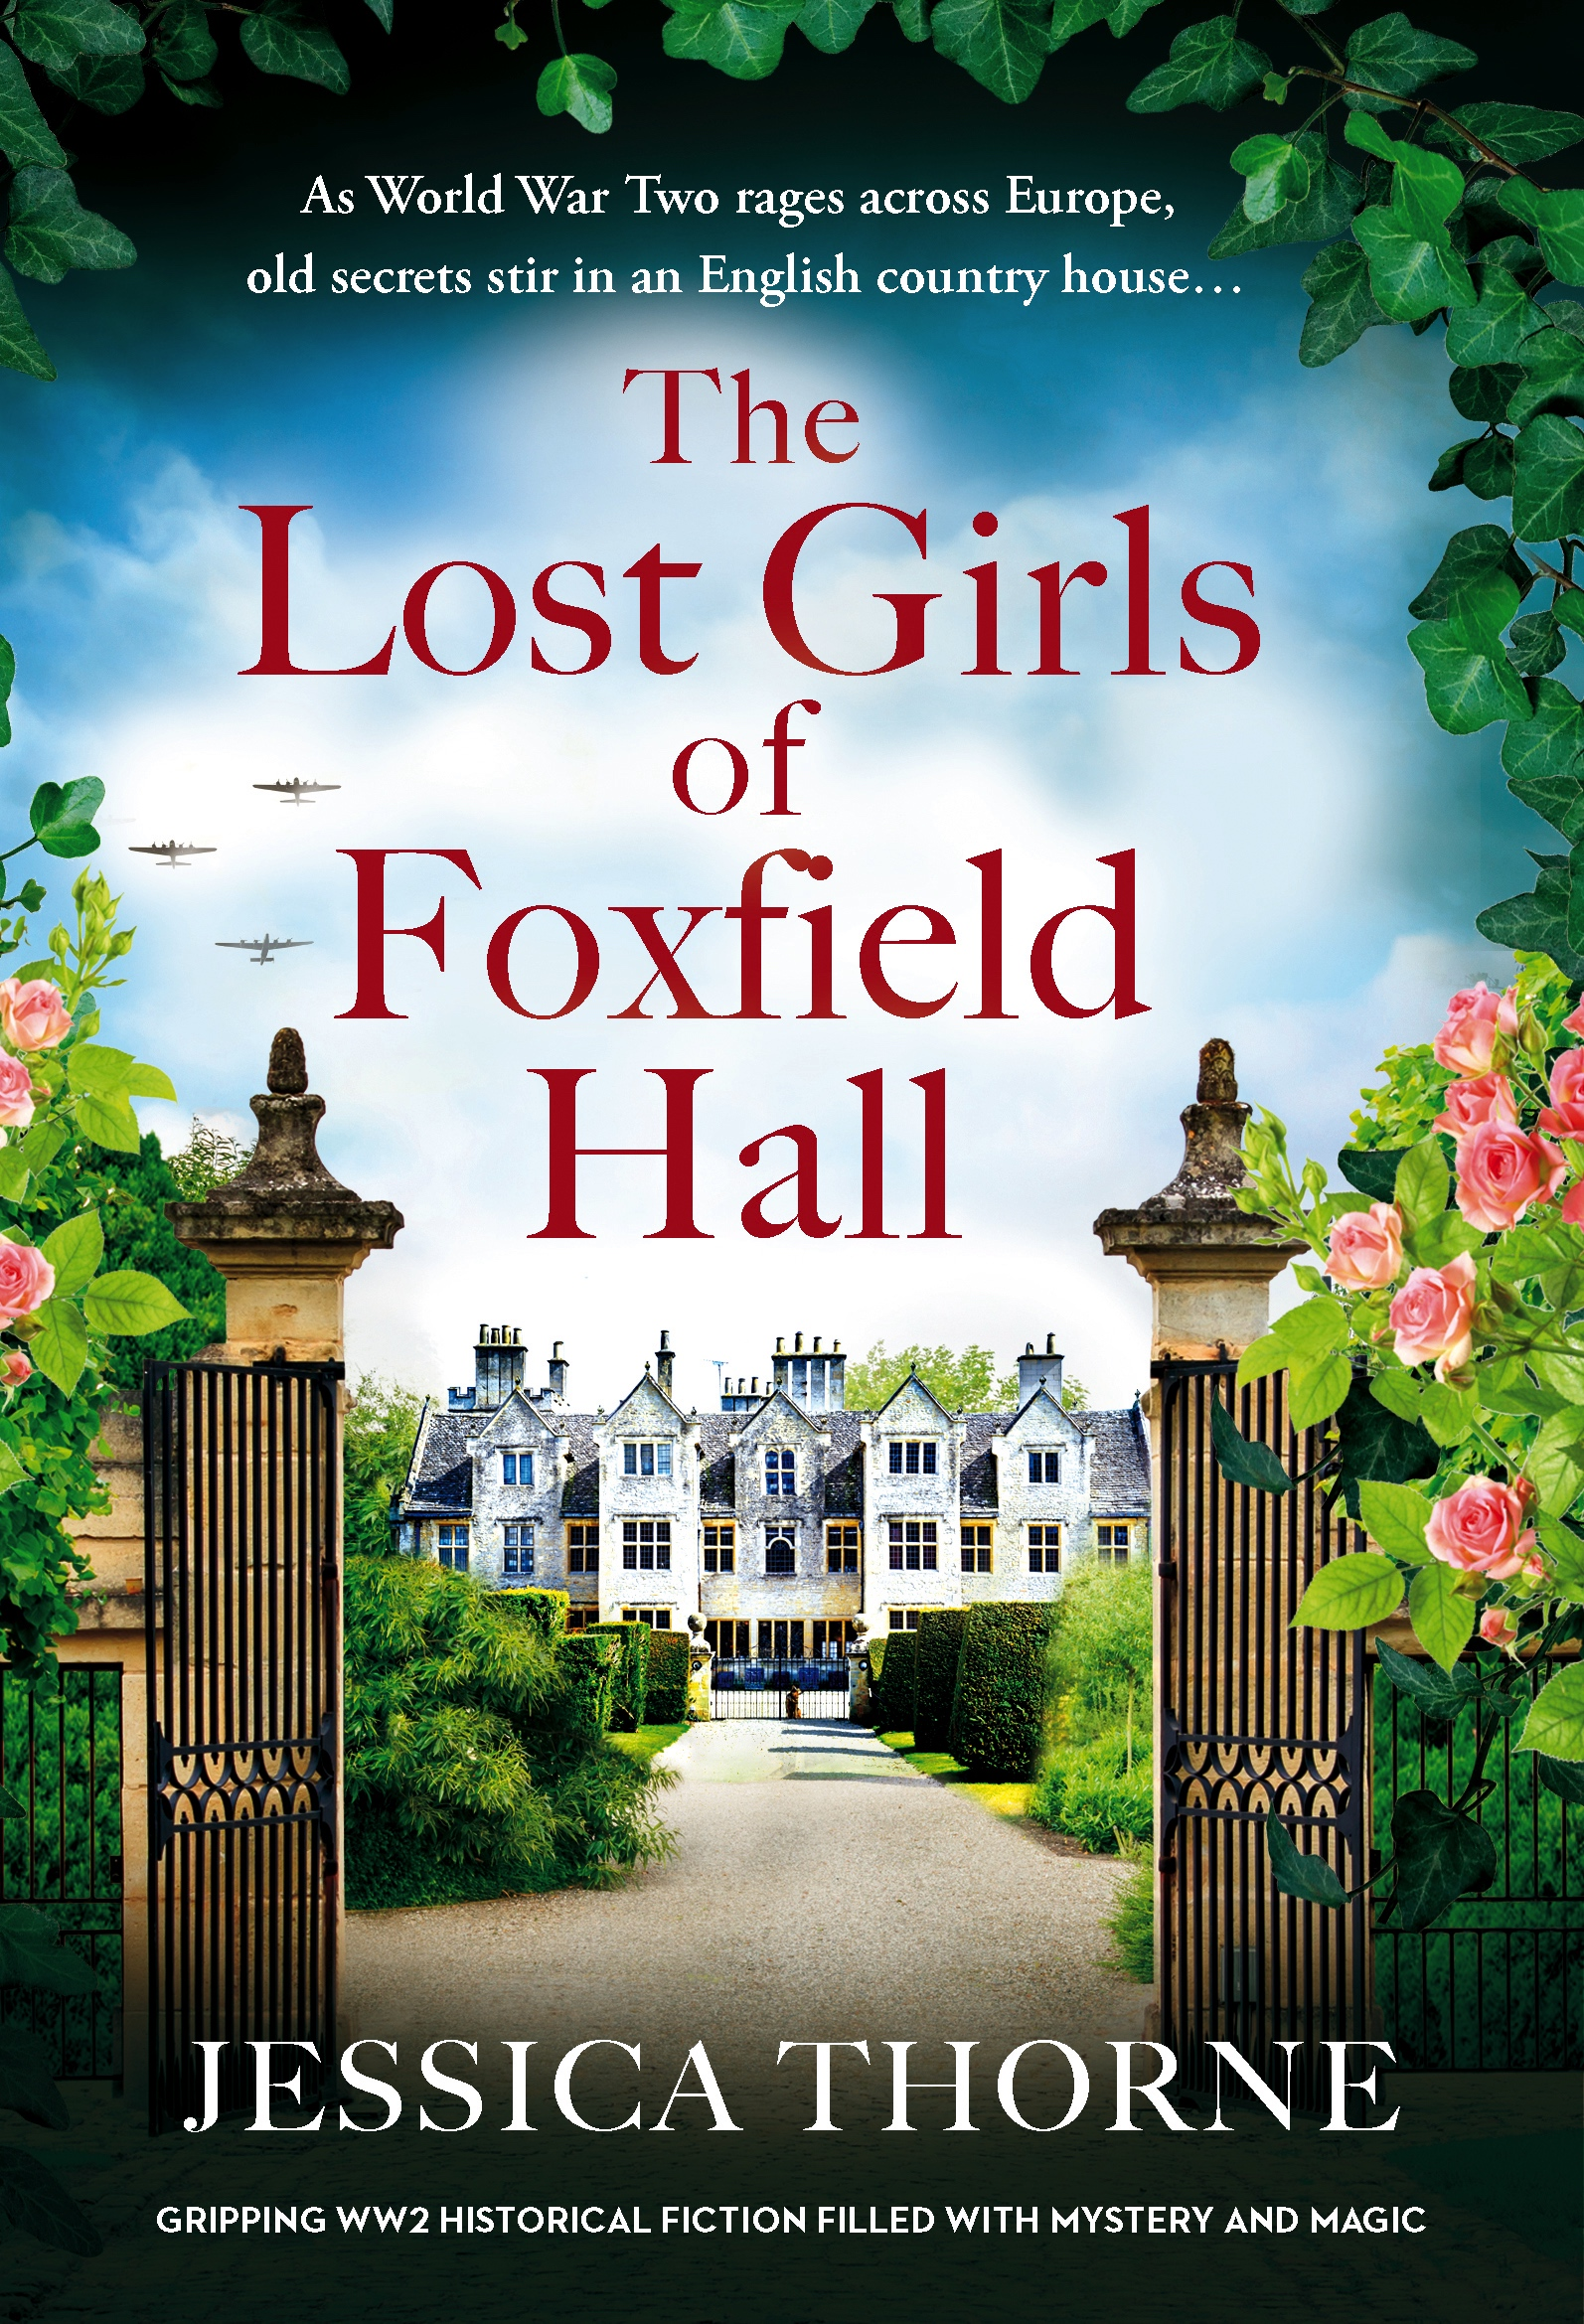 This is the cover of the book The Lost Girls of Foxfield Hall by Jessica Thorne